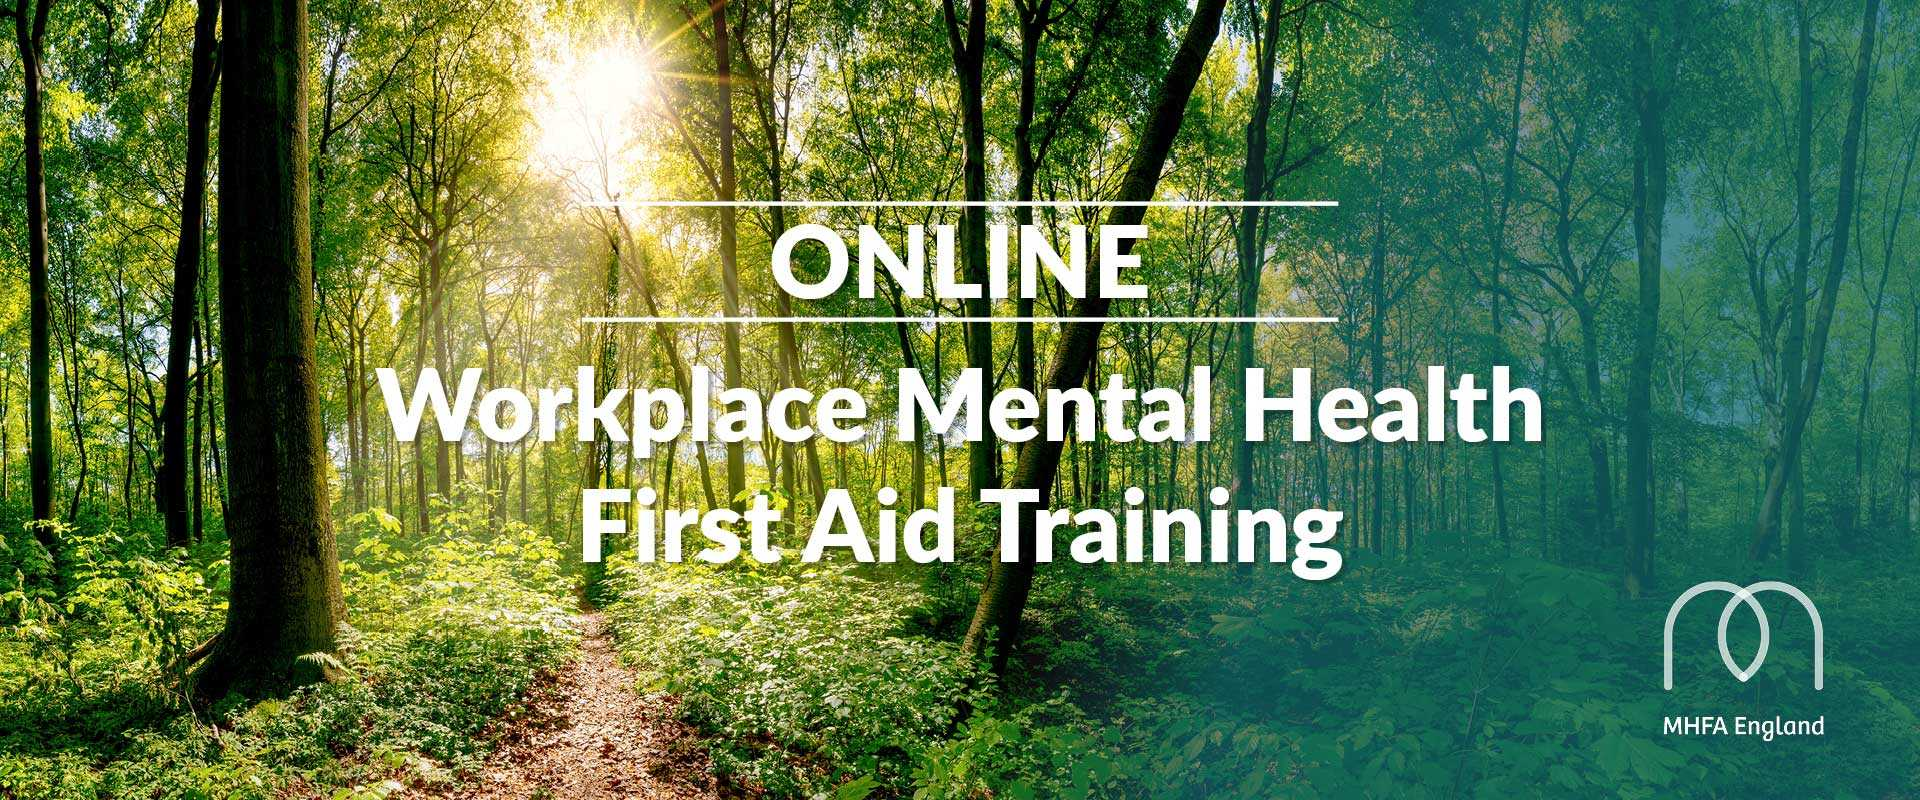 Mental Health First Aid Course Online